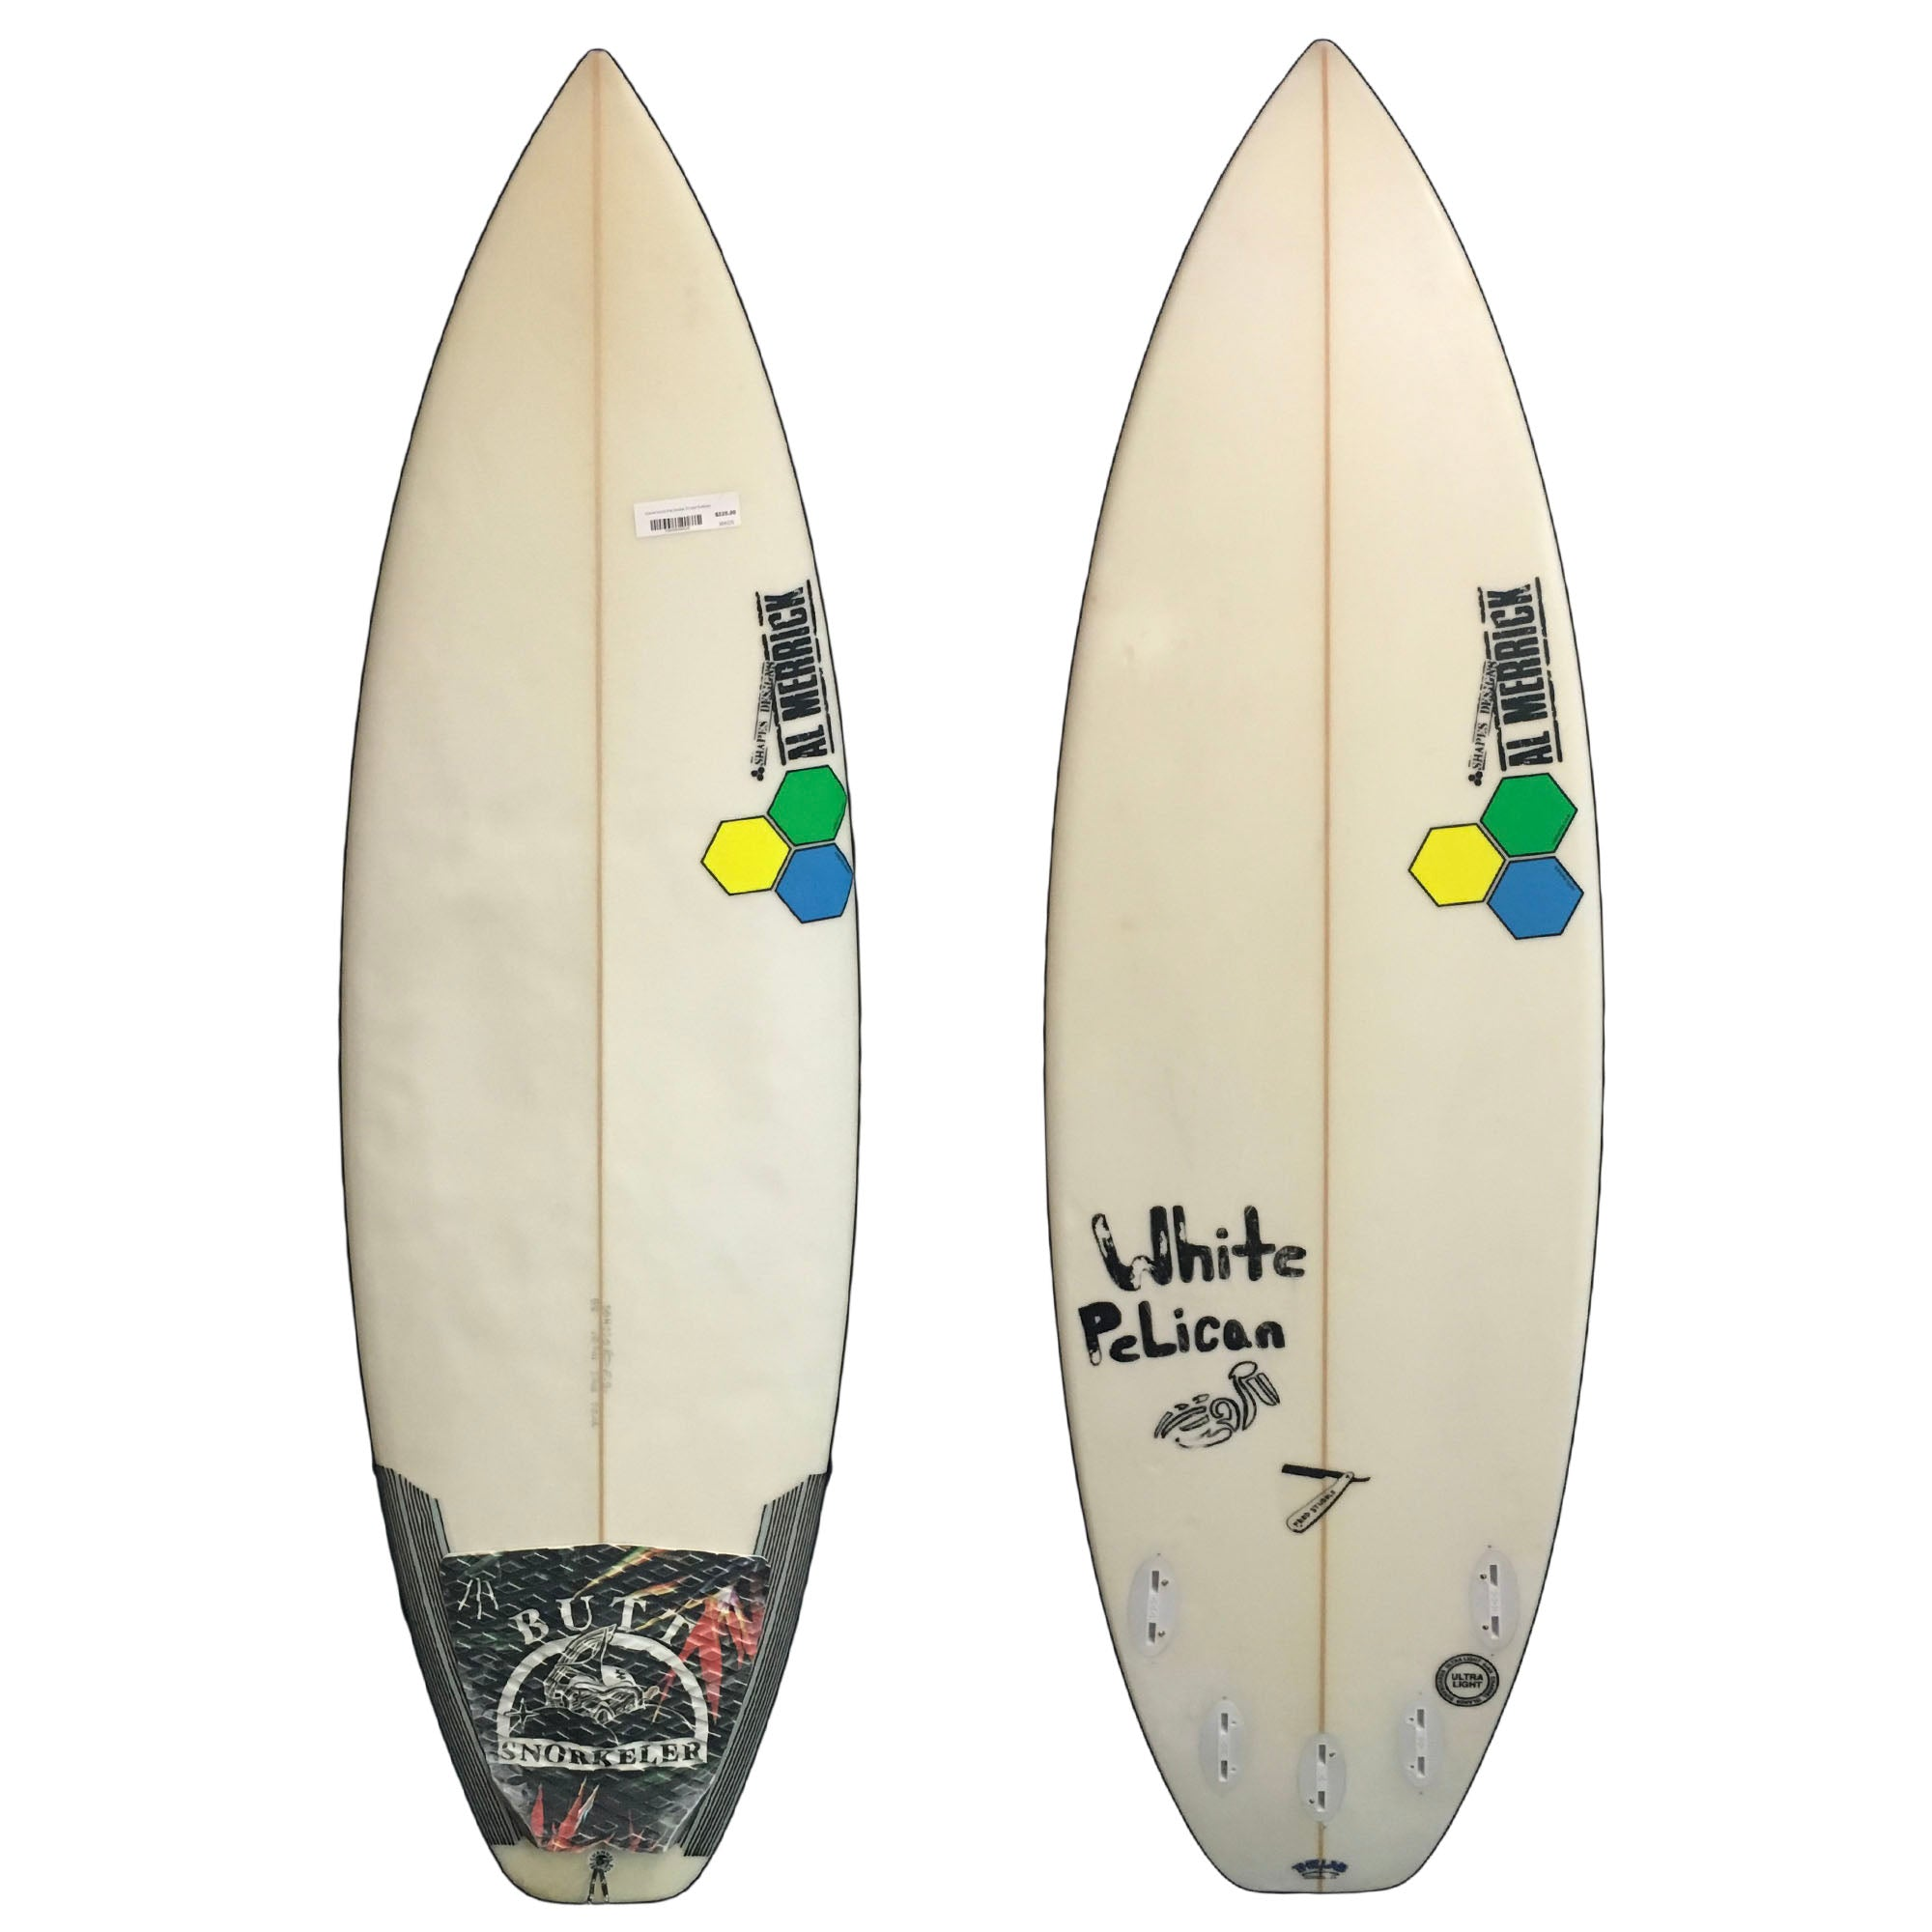 Channel Islands Fred Stubble 5'6 Used Surfboard